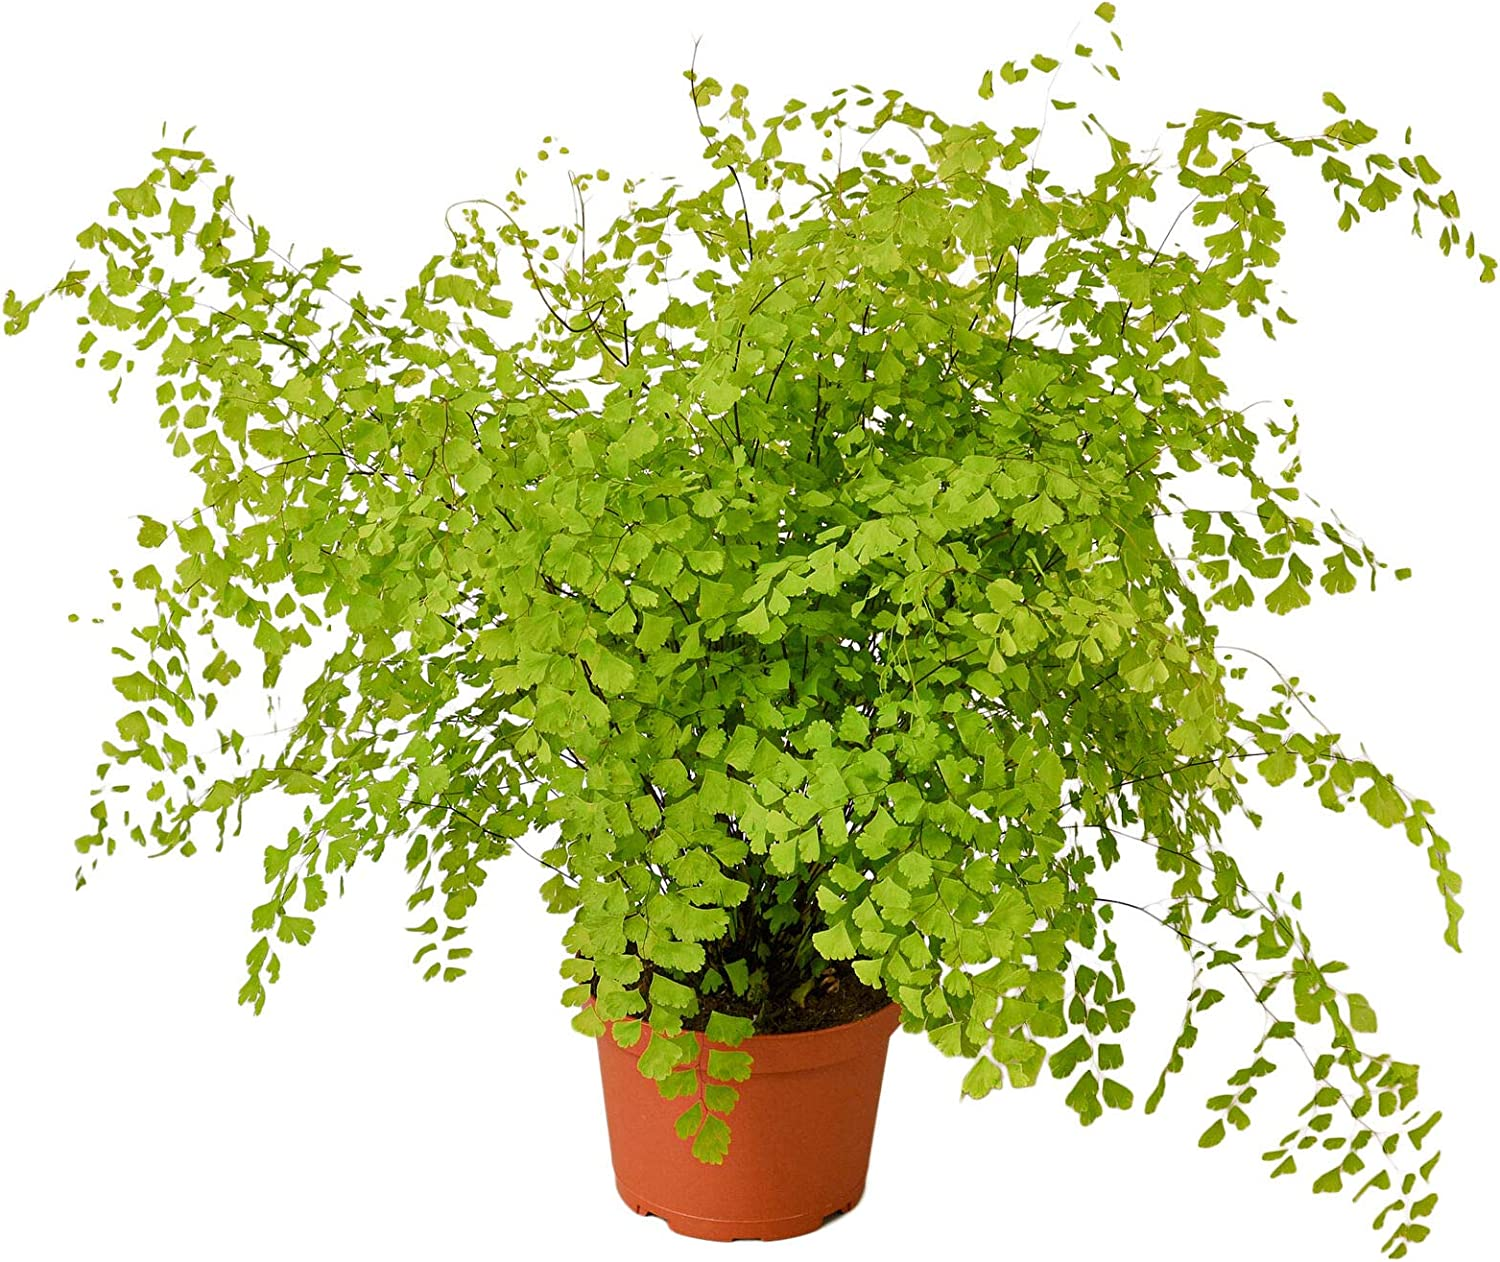 SmartMe Live Plant - Maidenhair Large-scale sale Fern Pot Indoo 6